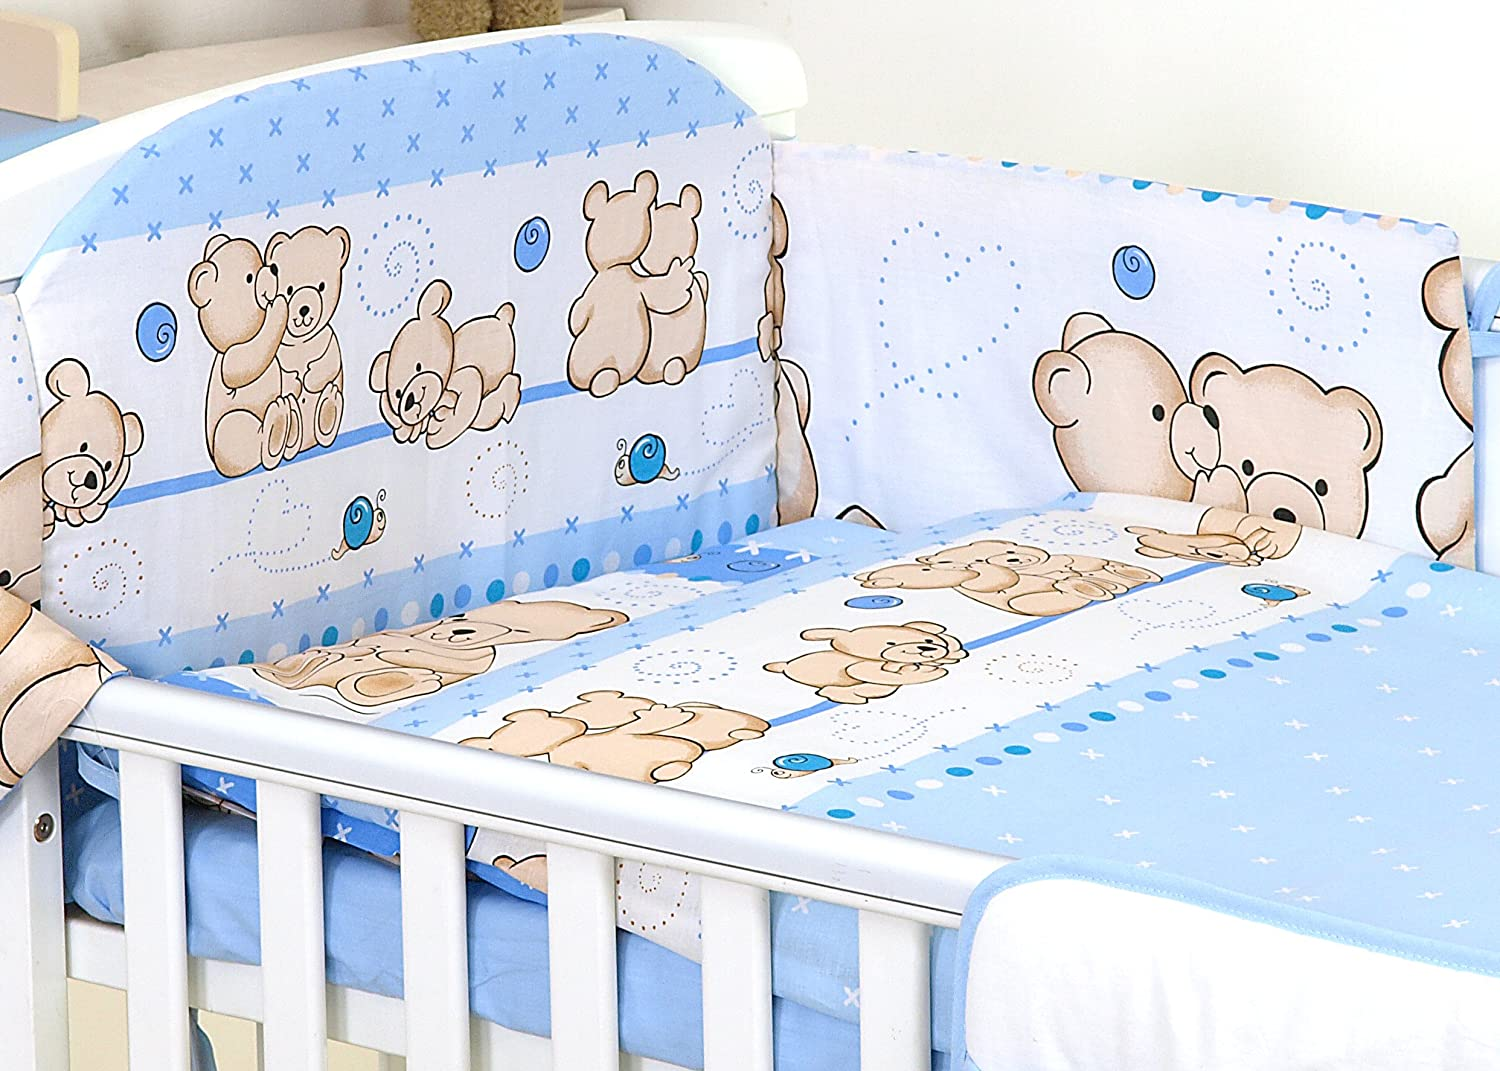 3 pc set BLUE FRIENDS TEDDY BEAR PATTERN inc DUVET COVER-PILLOW CASE-BUMPER - FOR COT 120X60 OR COT BED 140X70 (COT BED 140X70) SCANDI BEDDING LIMITED